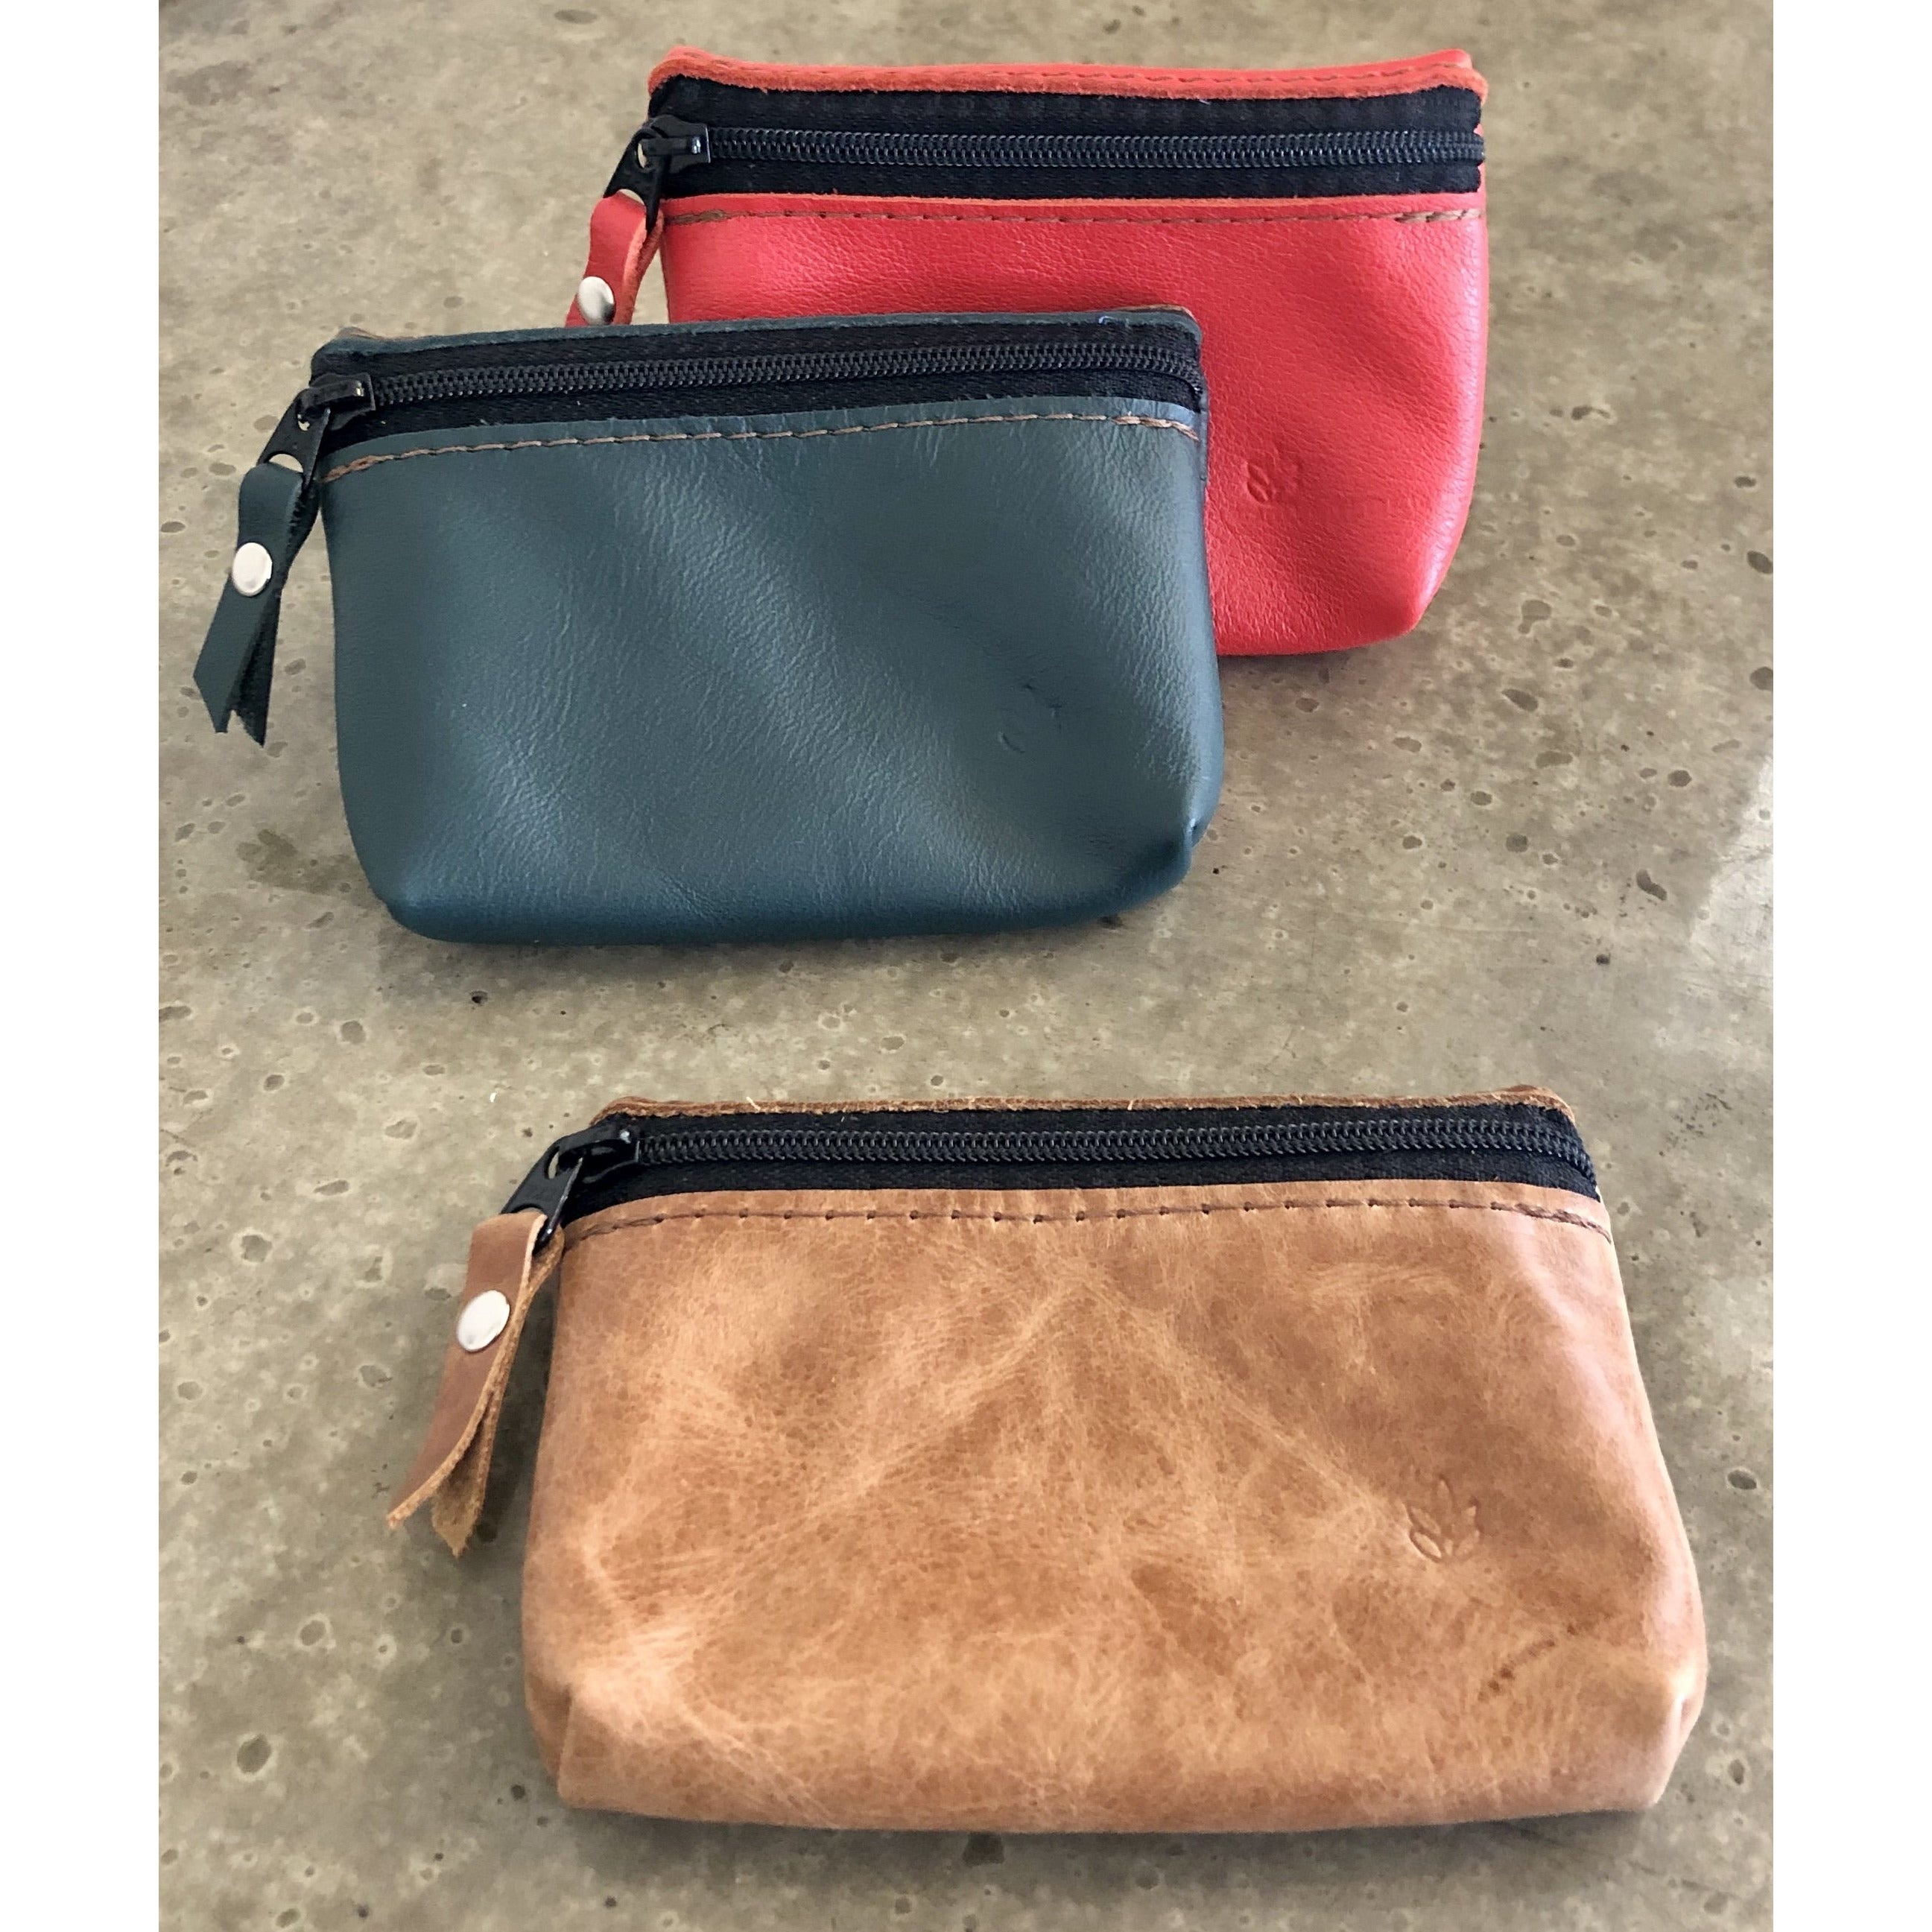 Leather zipper Pouch in beige, teal, and bright orange, with front zipper